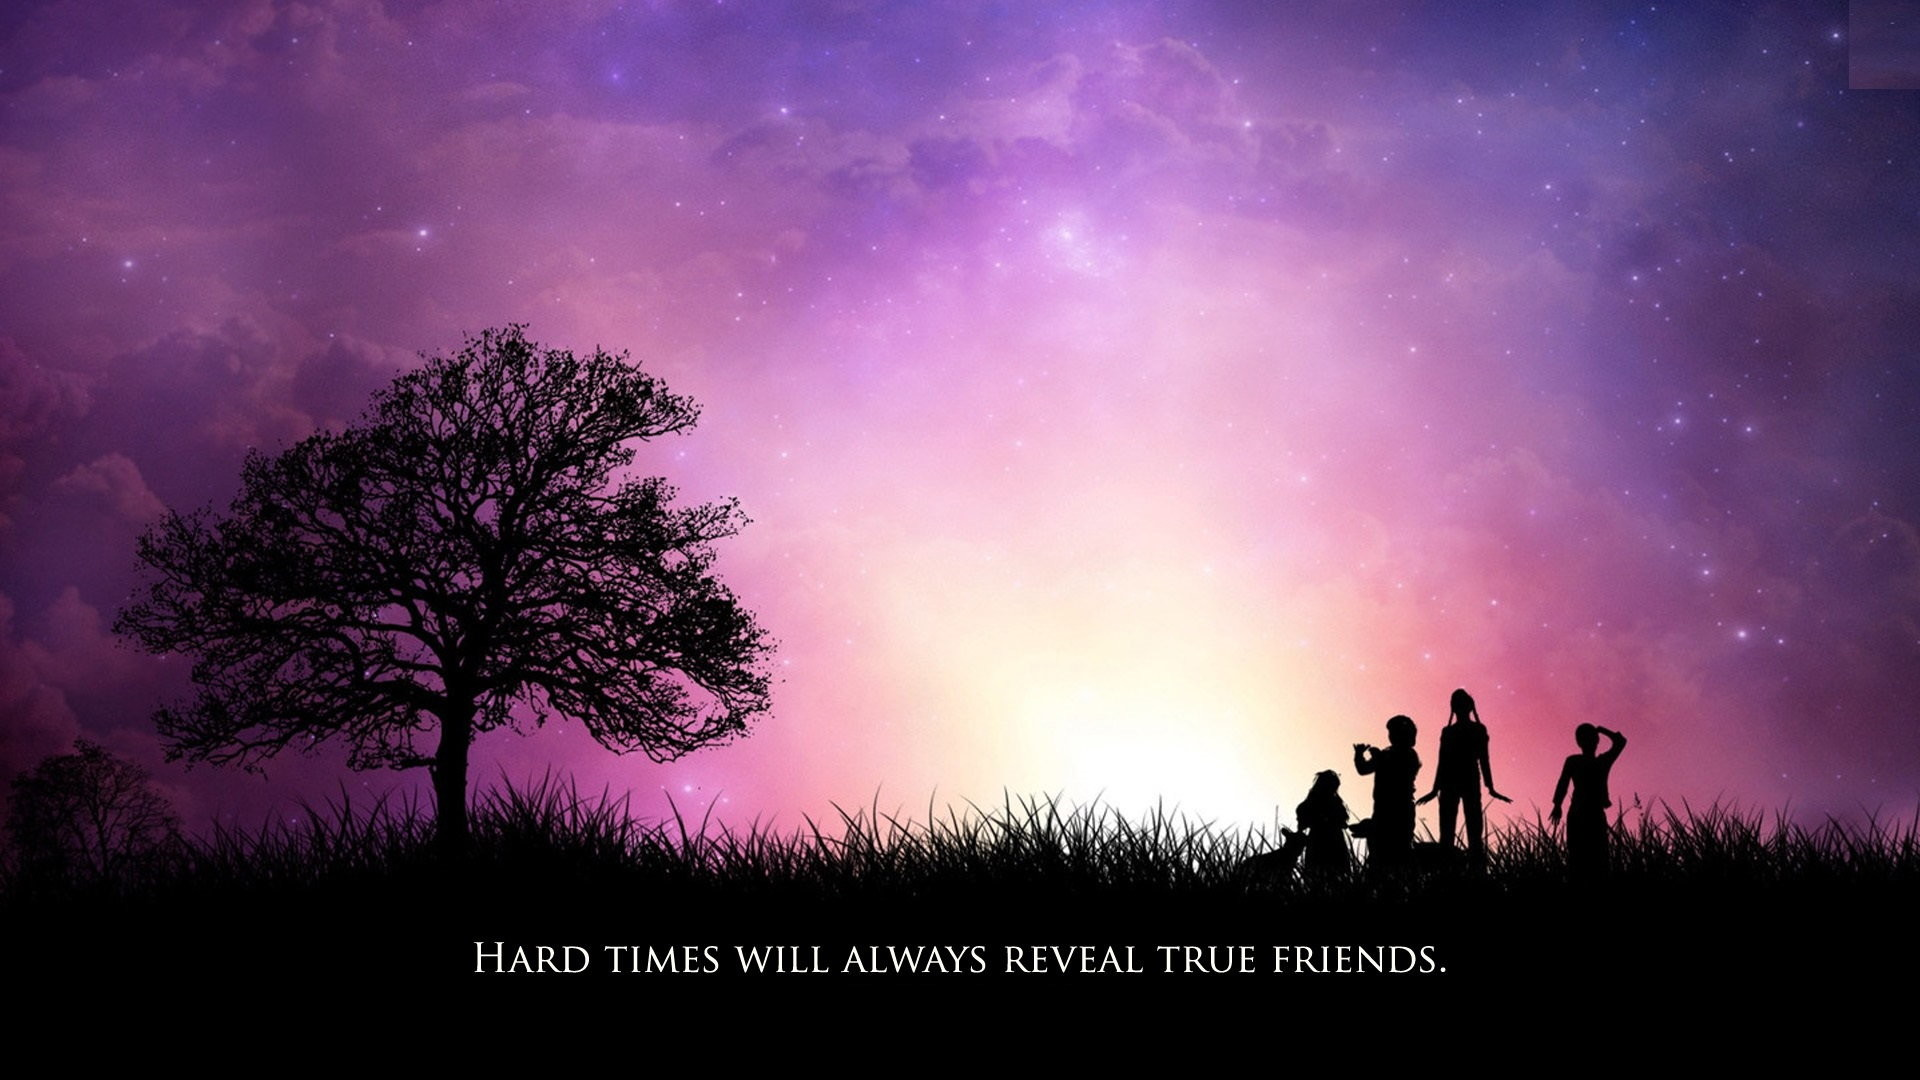 Love And Friendship Desktop Wallpaper : Best Friend Wallpapers (71+ images)